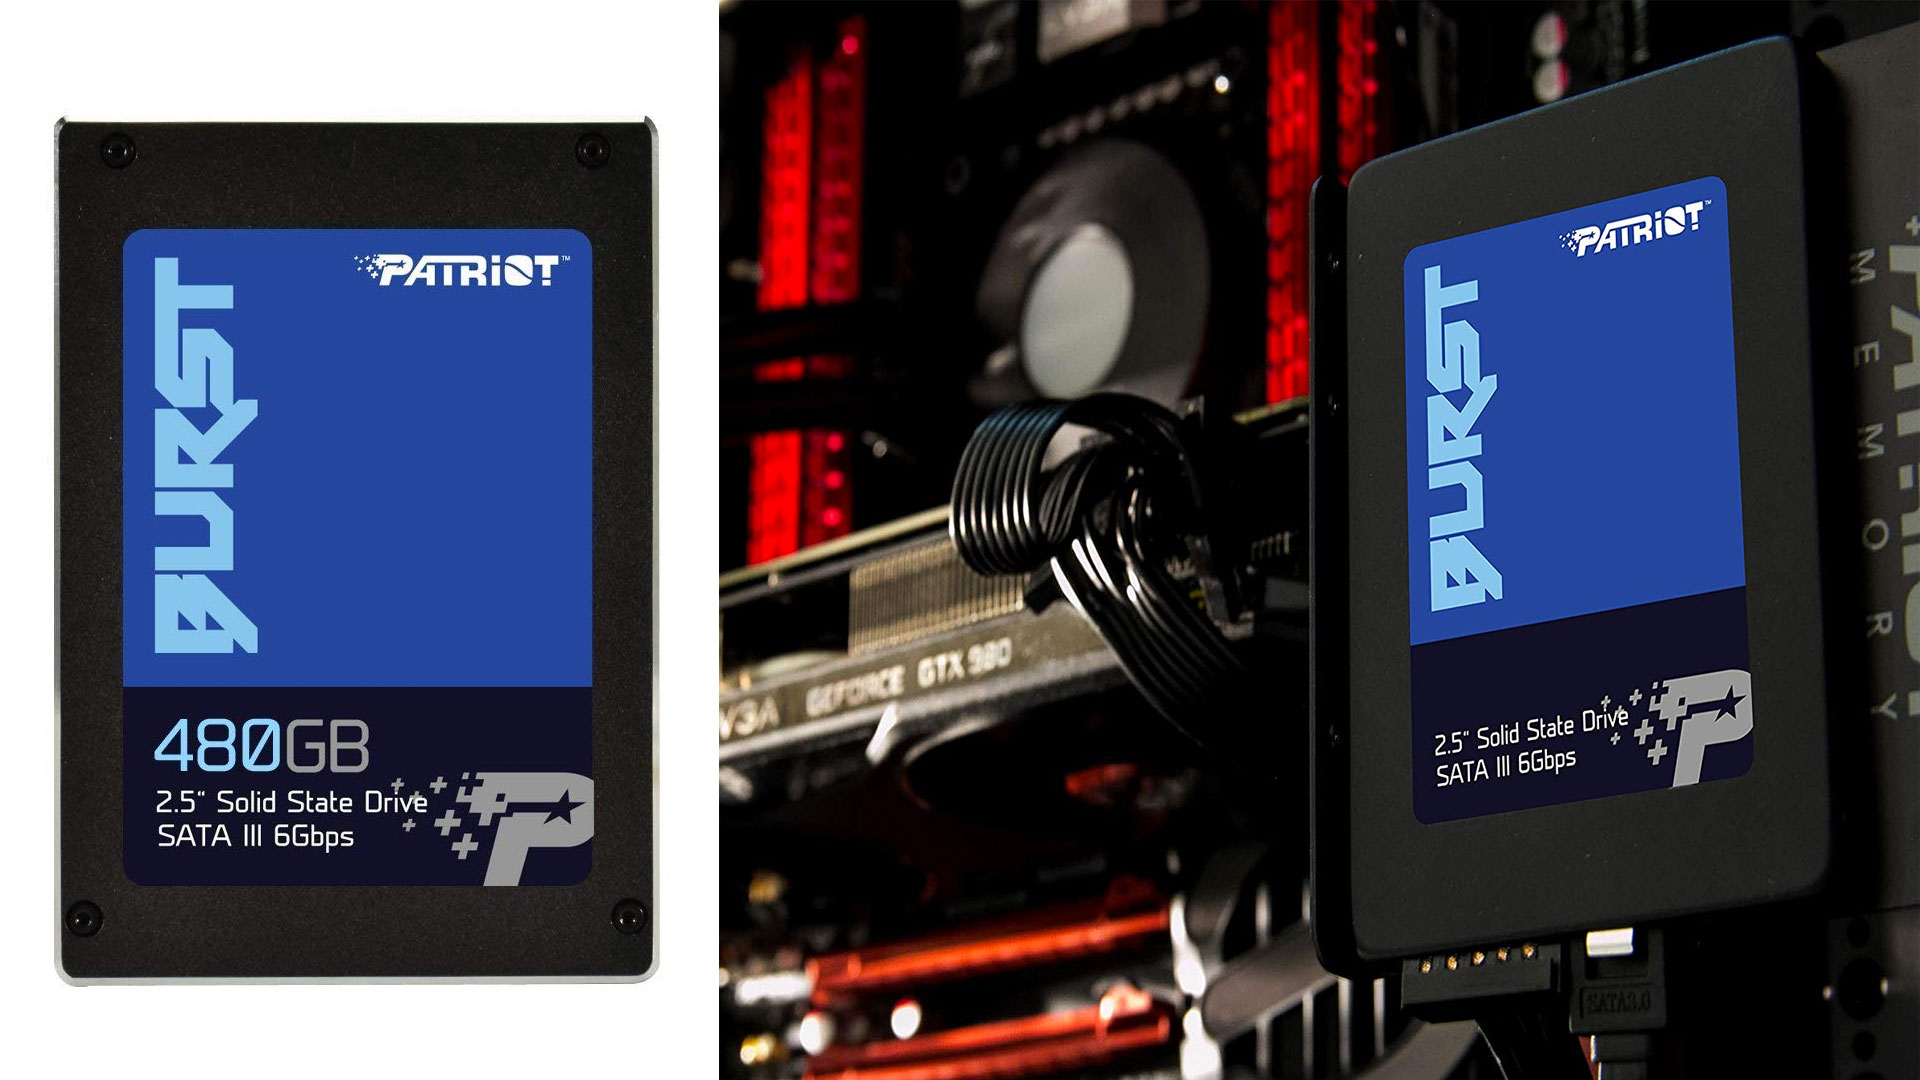 Patriot's 480GB SSD is an affordable upgrade to any aging